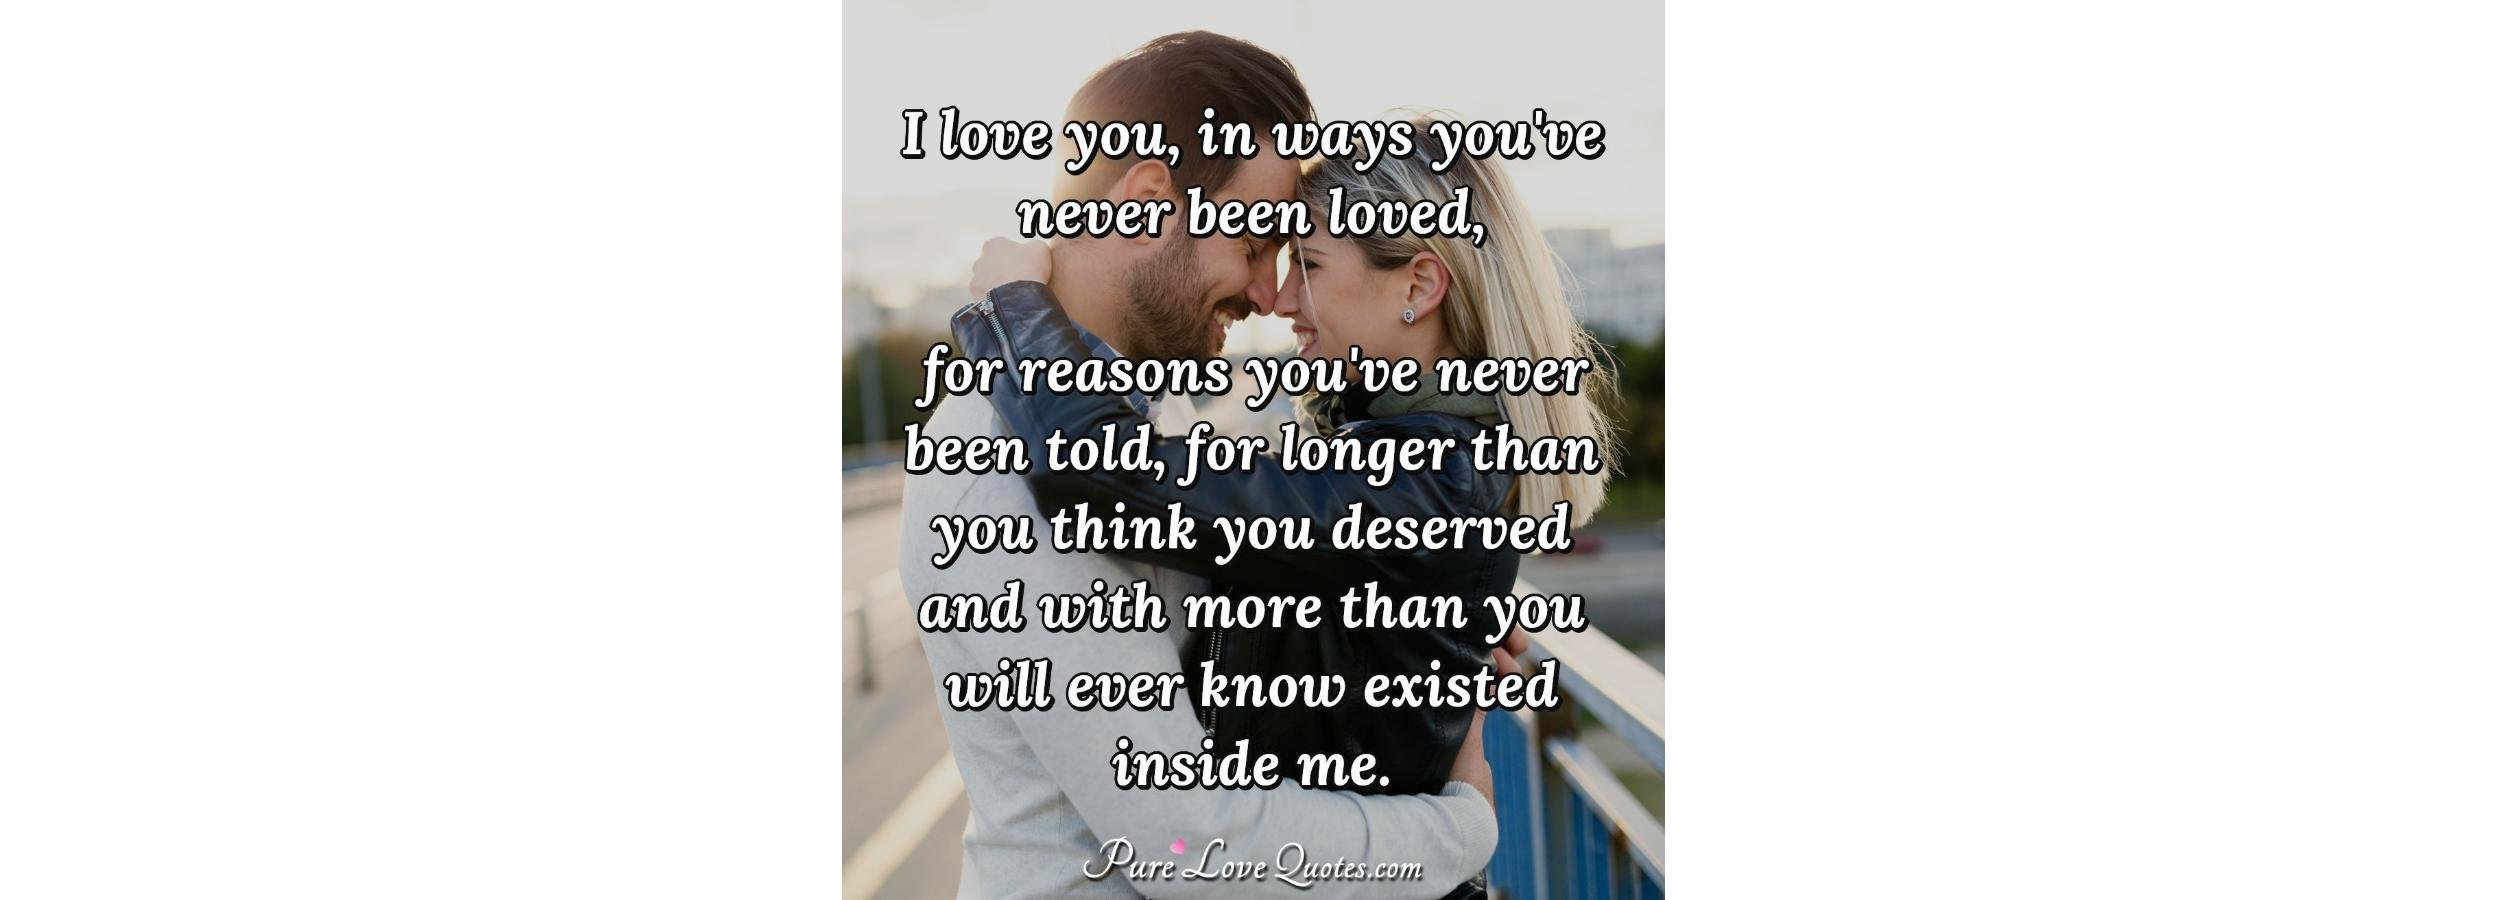 I Love You, In Ways You've Never Been Loved, For Reasons